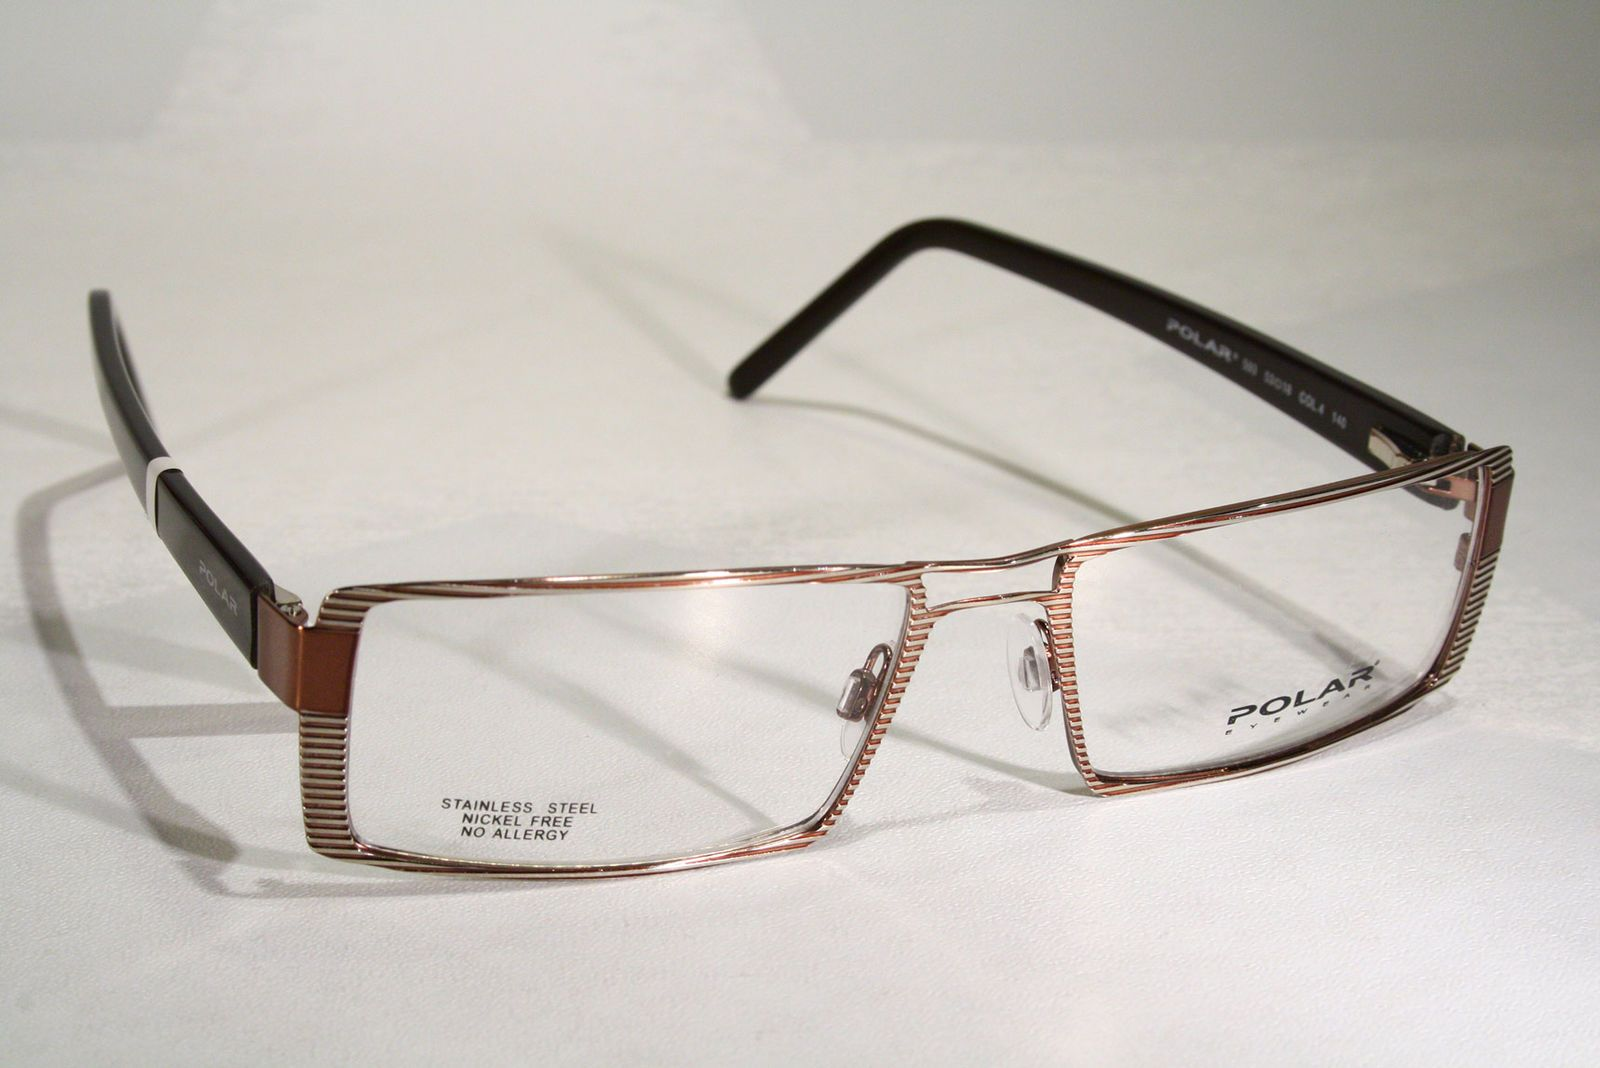 b7cebd2891c New POLAR Rich Showy Unique Hot Rectangular Gold   Copper Color Eyeglasses  Frames Glasses   eBay (RipVanW)